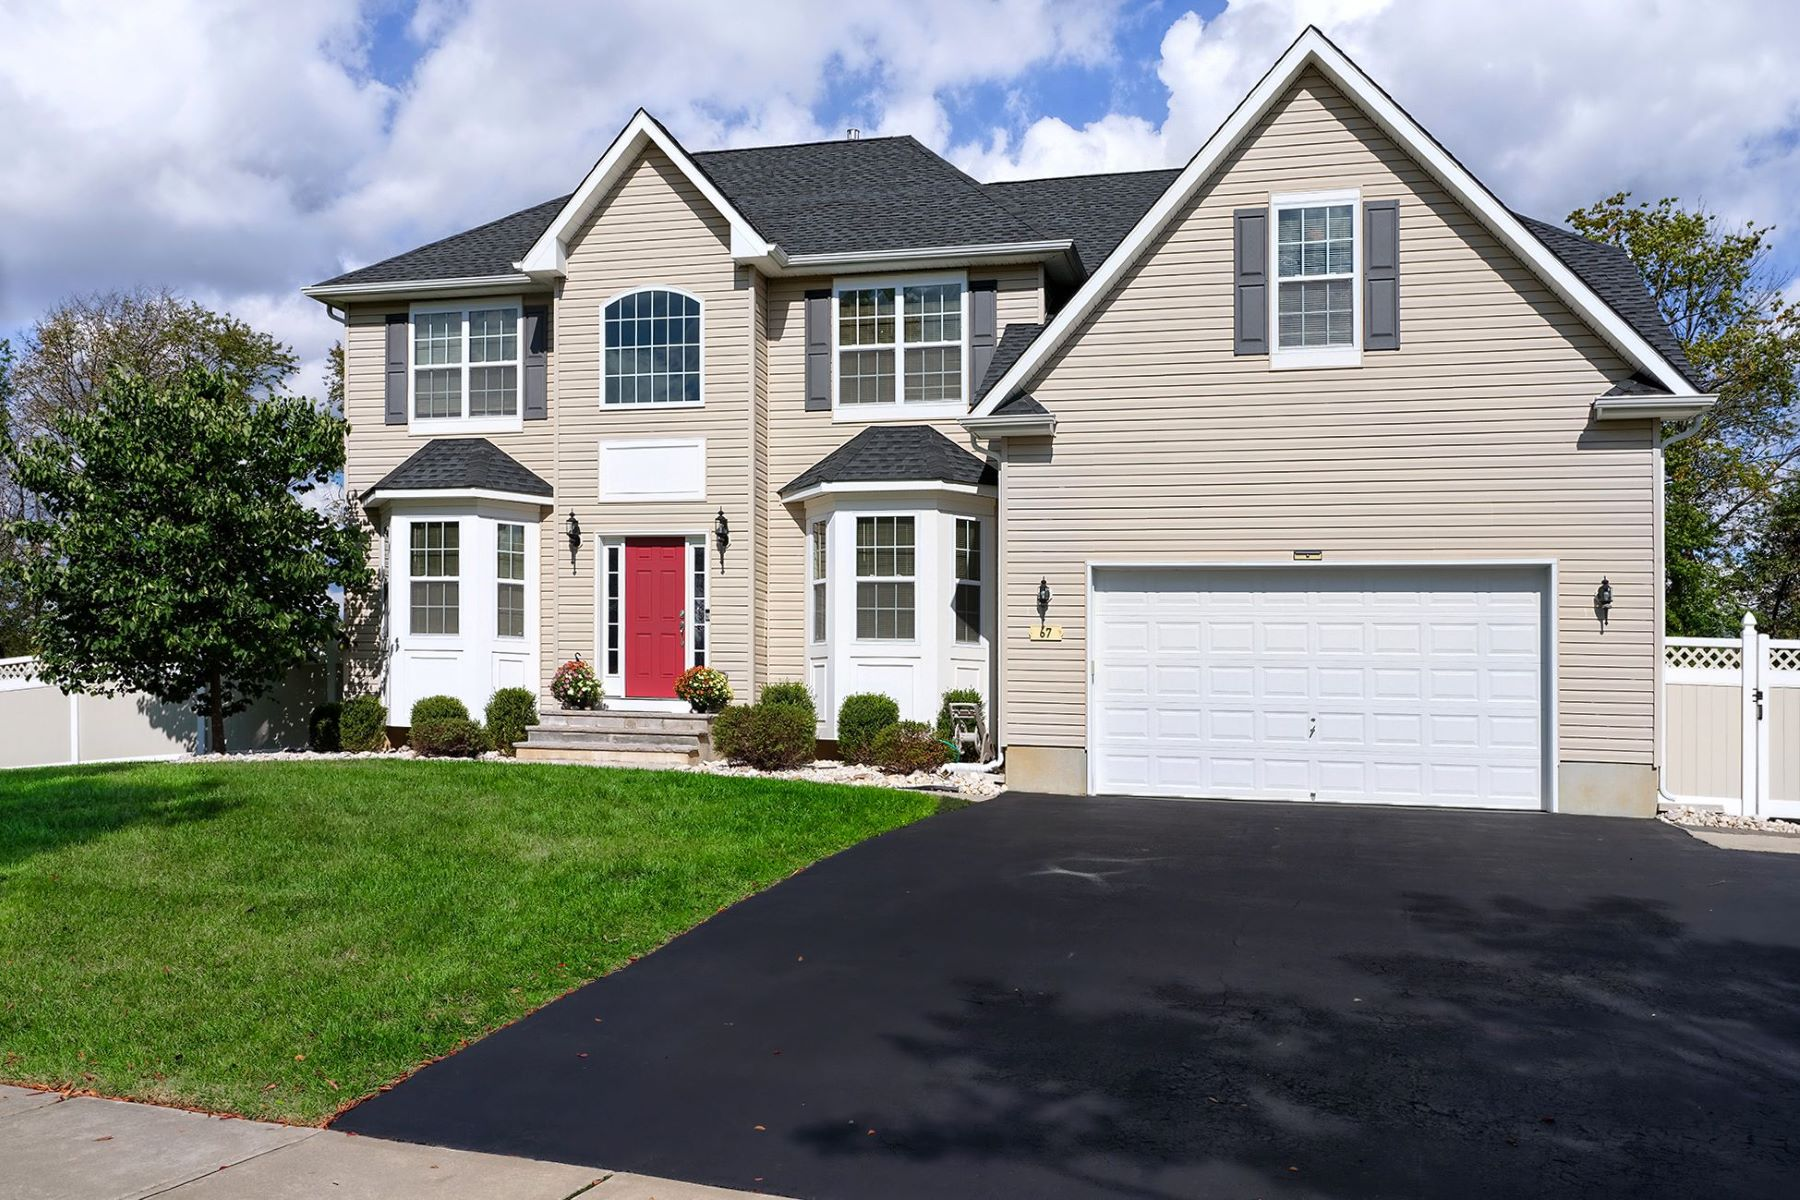 Single Family Homes for Sale at Six Year Old Beauty in East Windsor 67 Oak Creek Road, East Windsor, New Jersey 08520 United States